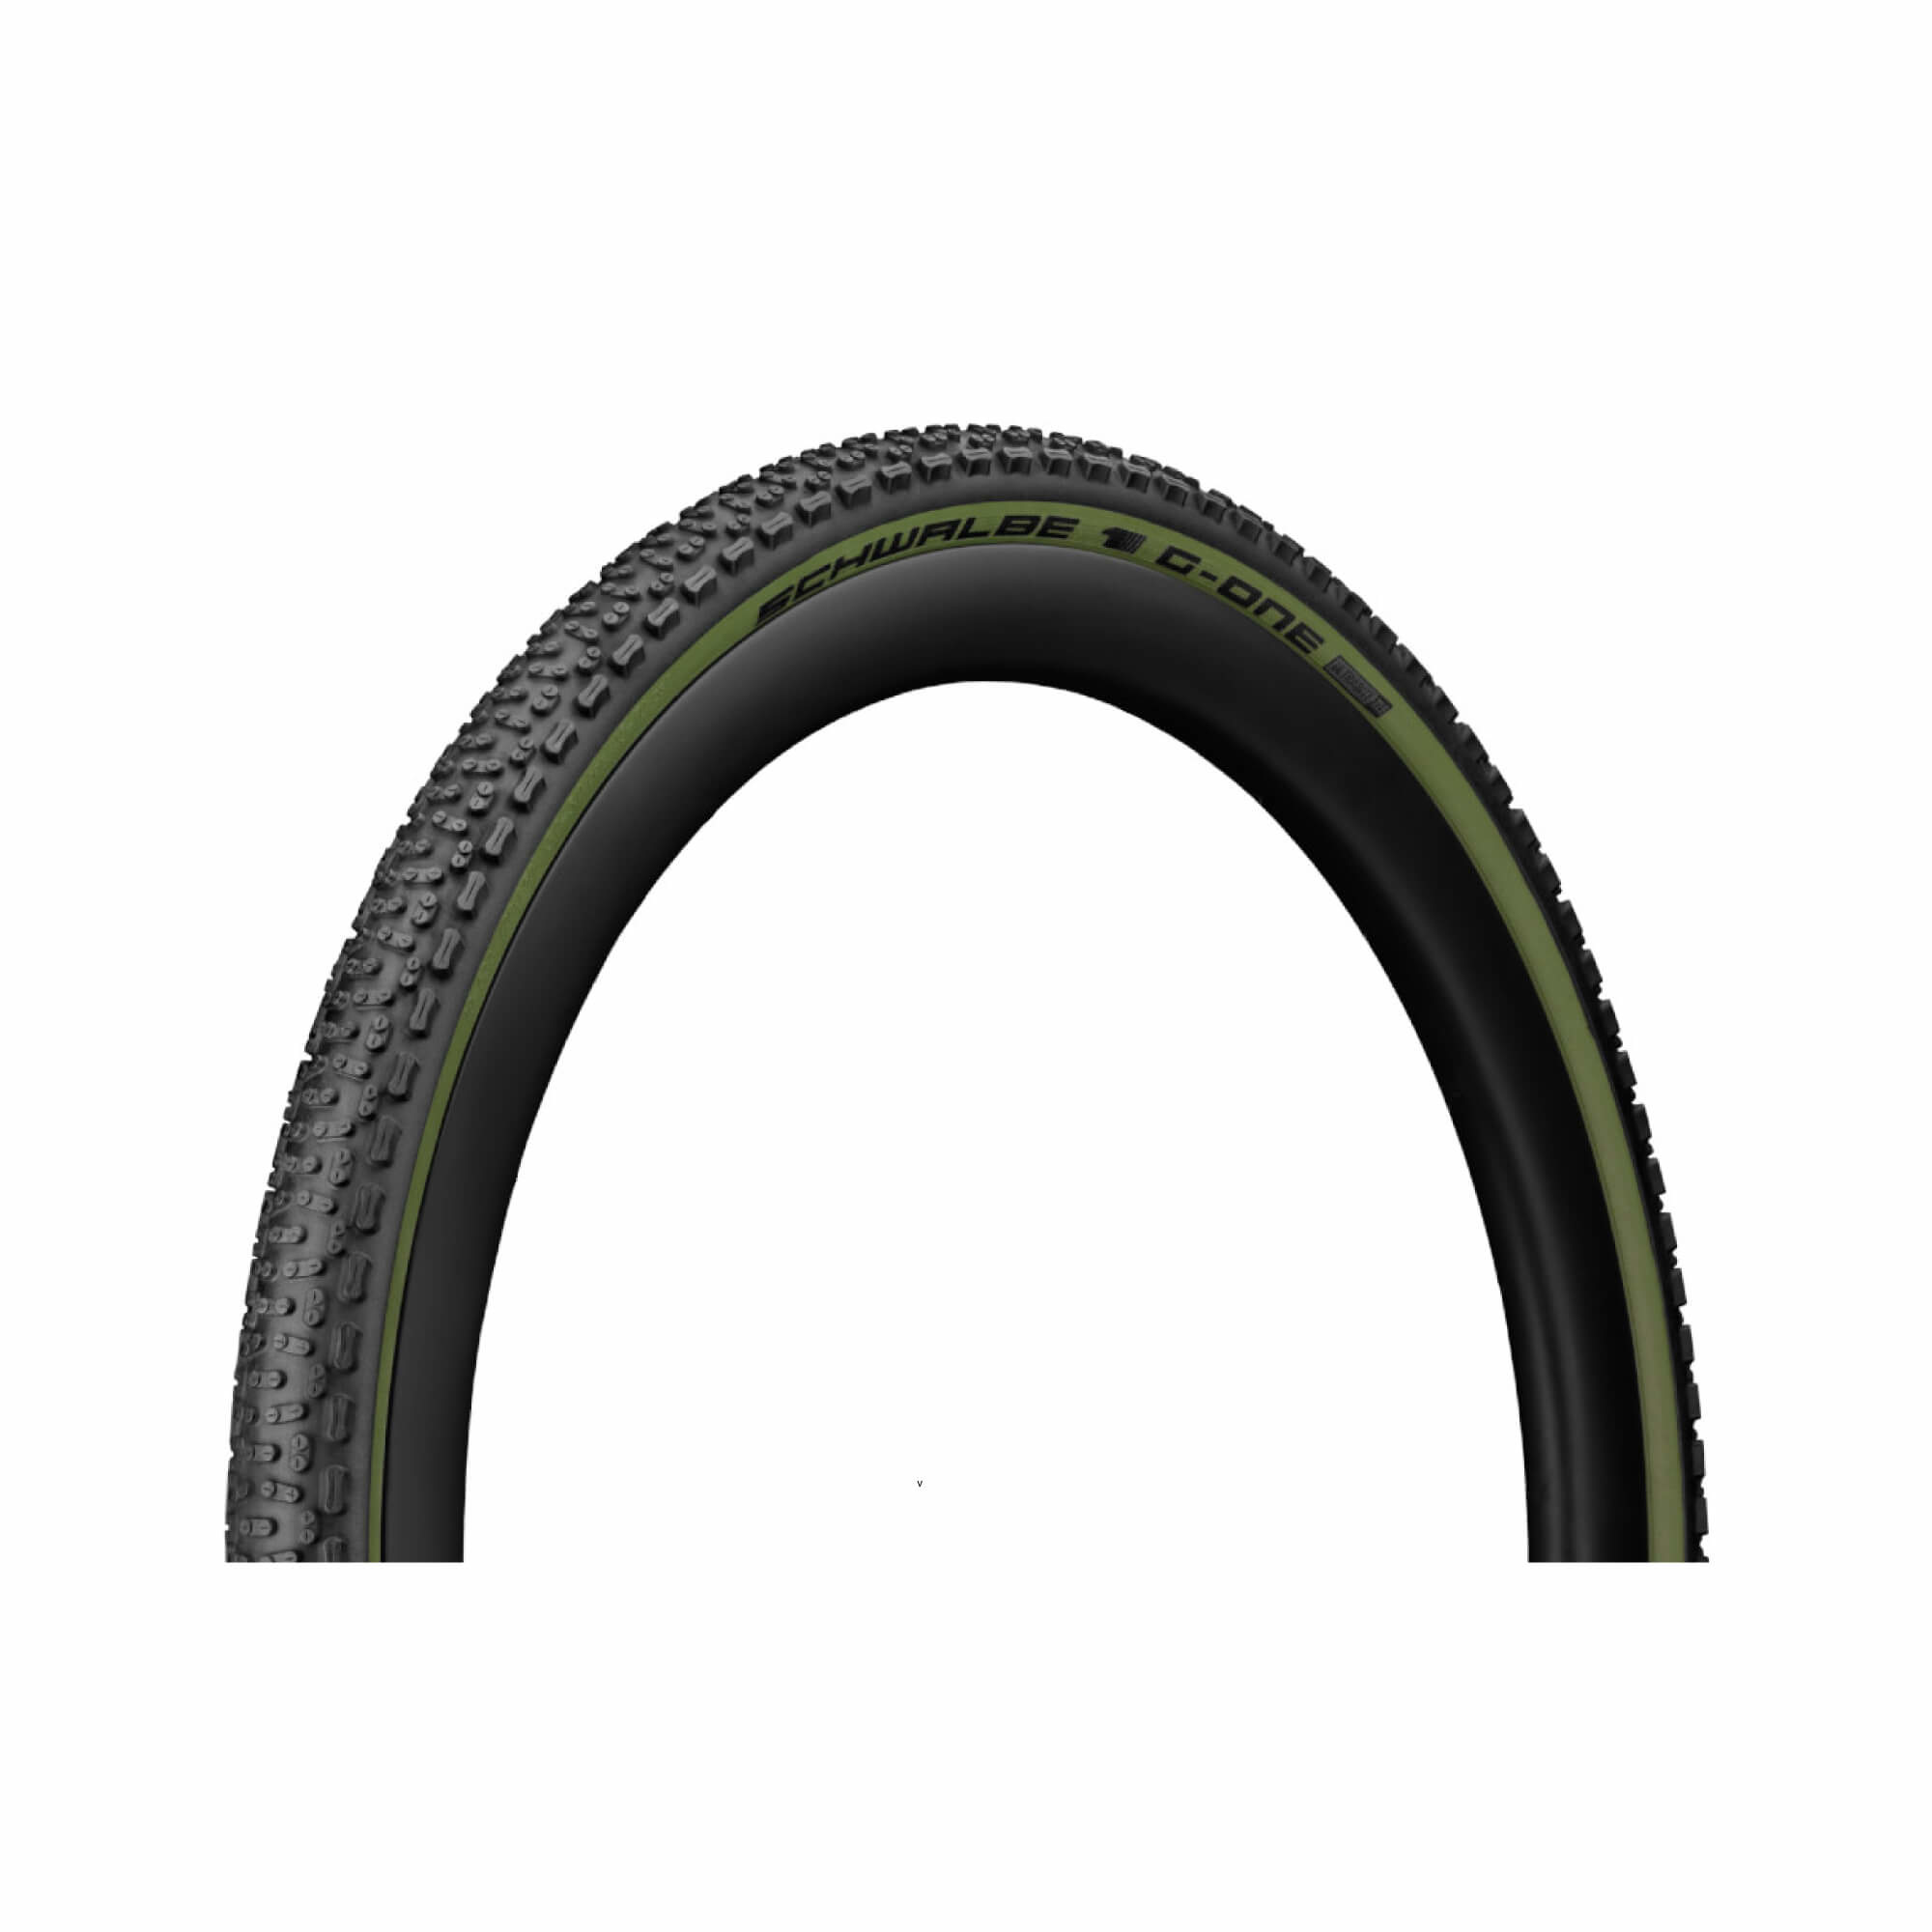 G-One Ultra Bite Olive Green Skin Super Ground Addix Speedgrip Evolution Line Tubeless Easy-1